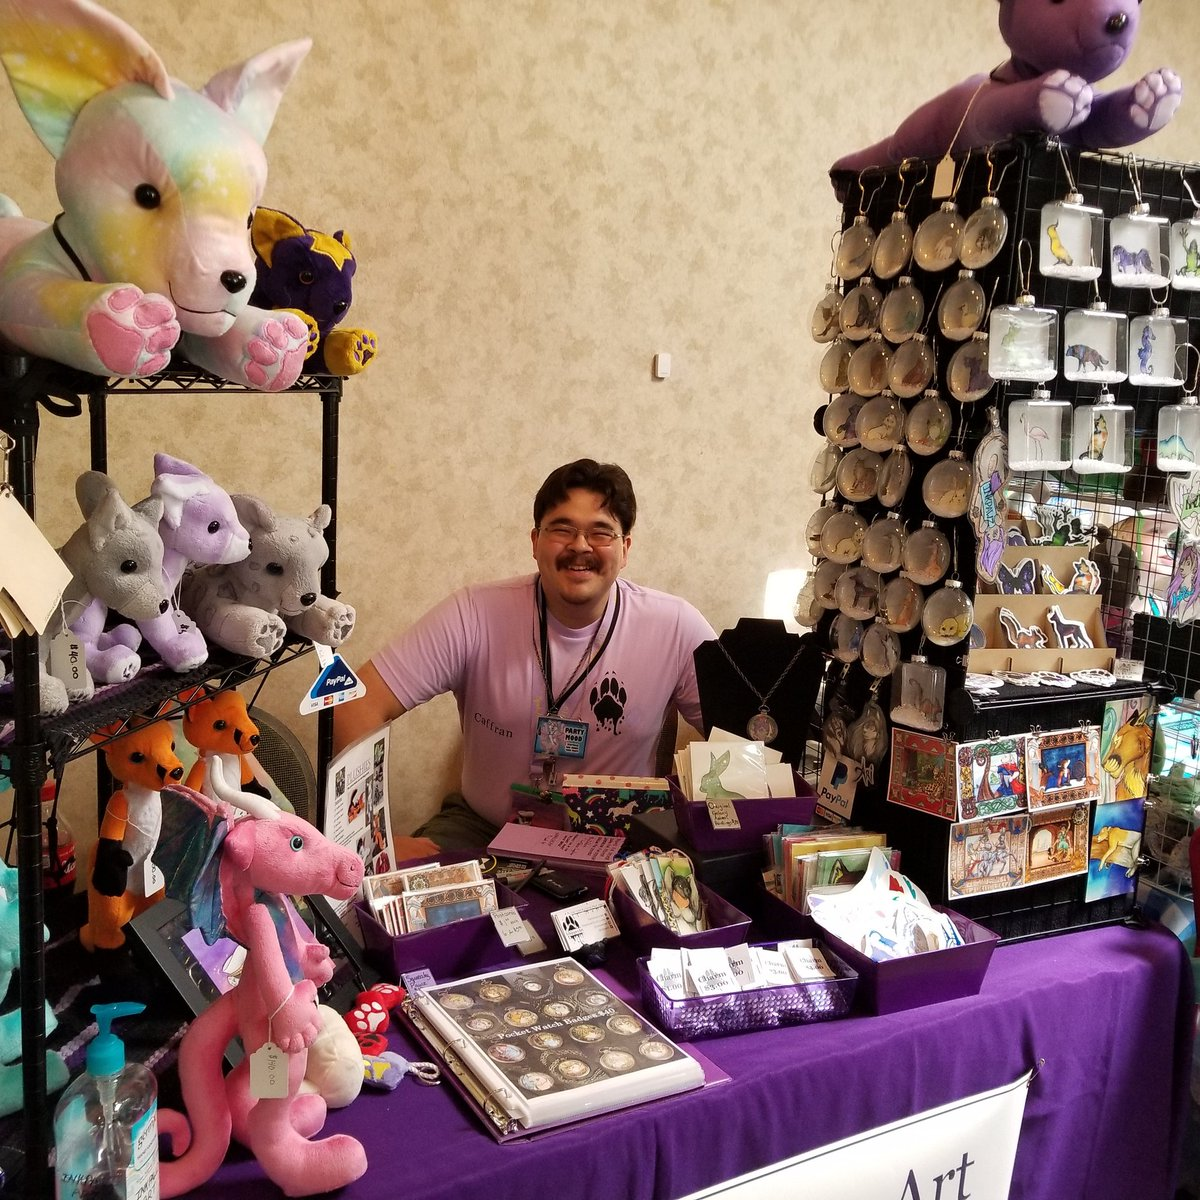 Day 3 of SpokAnthro! Dealers Den is open till 4pm come by for your last minute buys.  #spokanthro2019 #spokanthro #inkpawz #inkpawzart #dealersden #spokanthrodealerden #dealer #artist<br>http://pic.twitter.com/wkJkWE5TFO